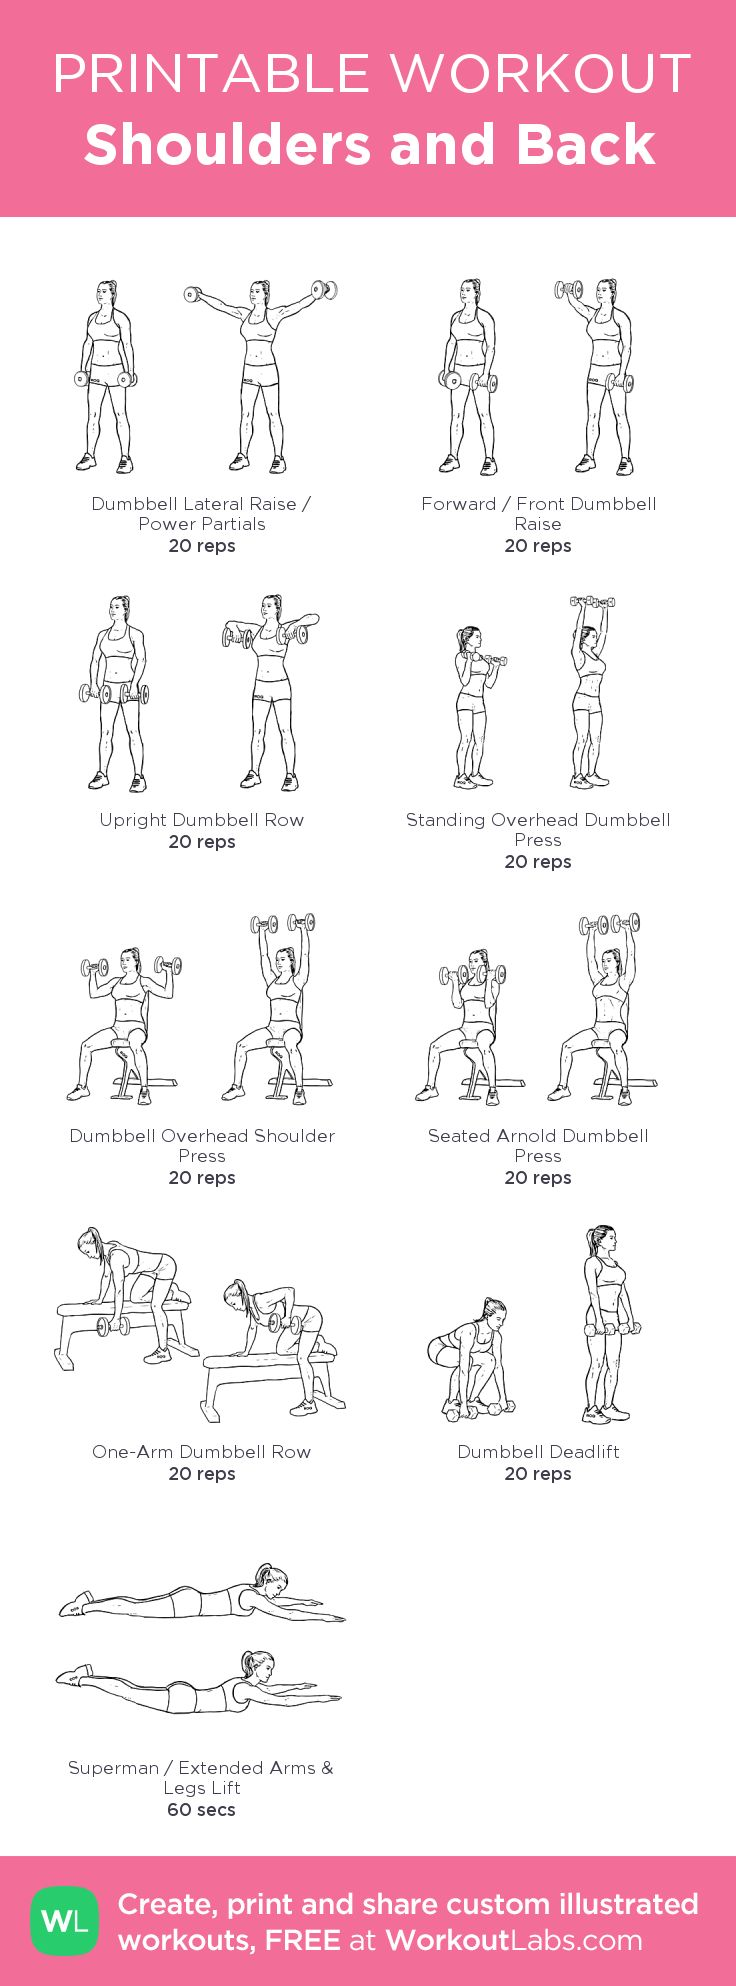 17 Best Ideas About Back And Shoulder Workout On Pinterest